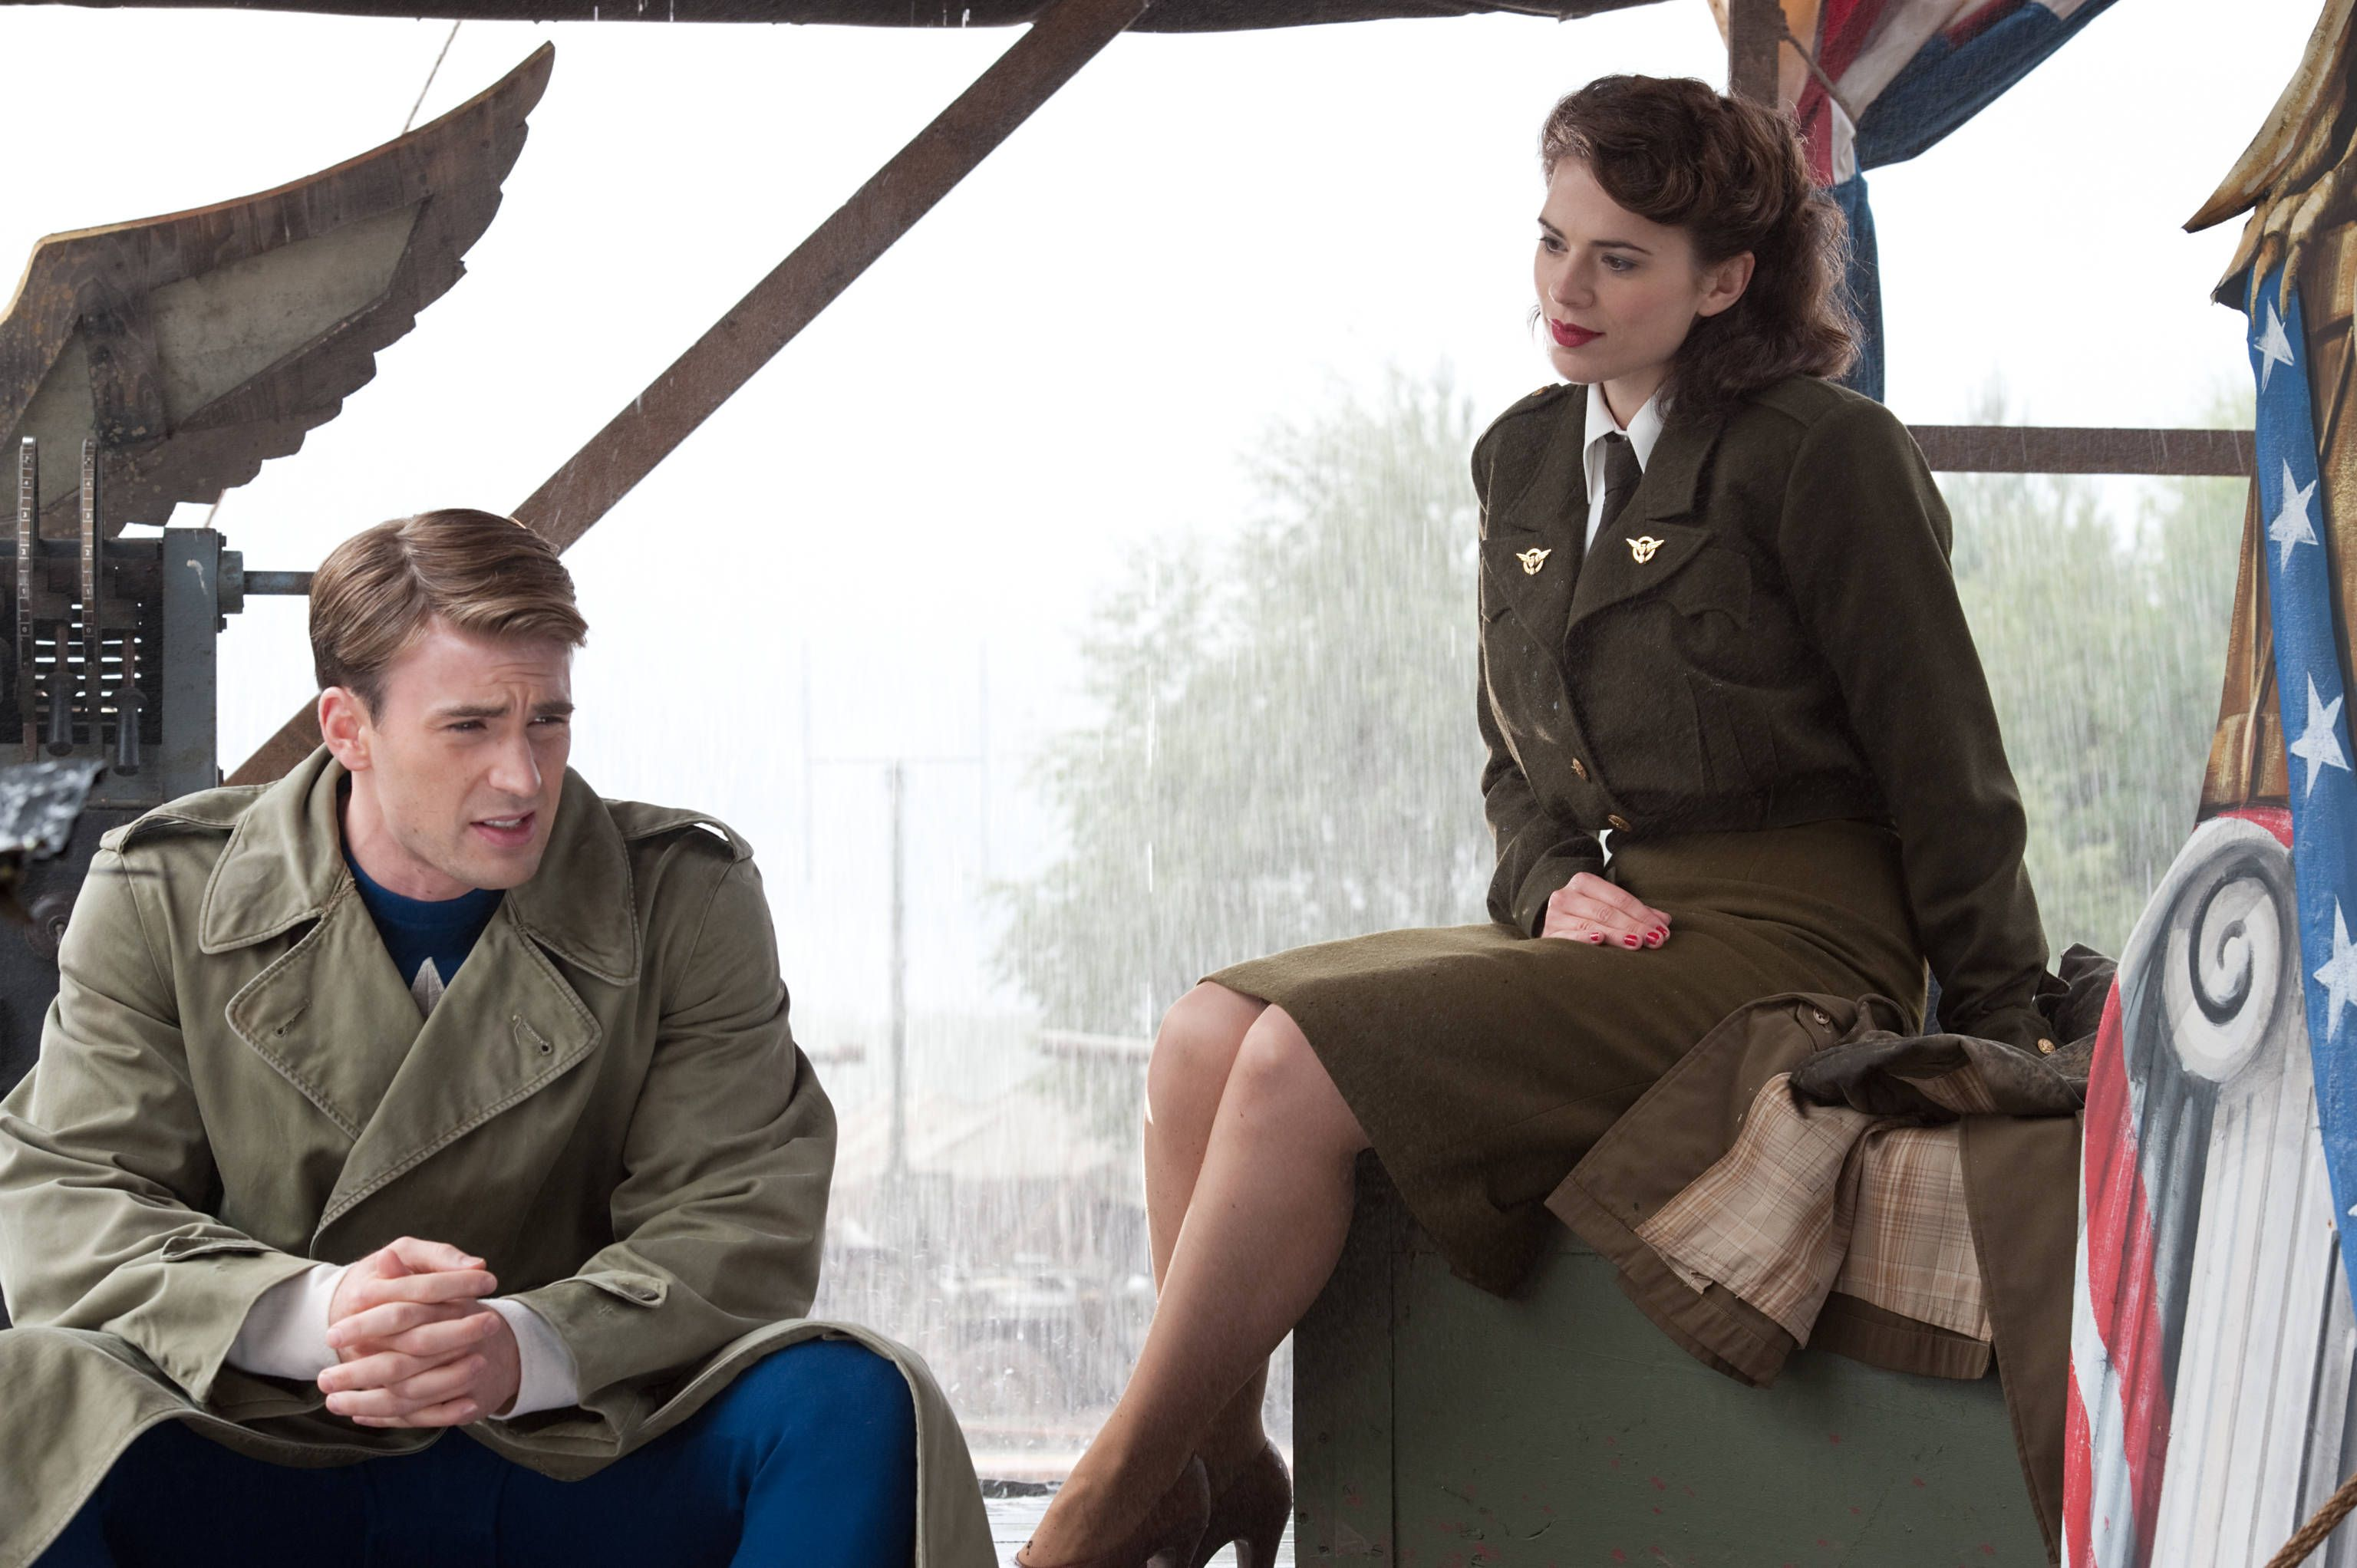 Steve Rogers (Chris Evans) and Peggy Carter (Hayley Atwell): Captain America, the First Avenger